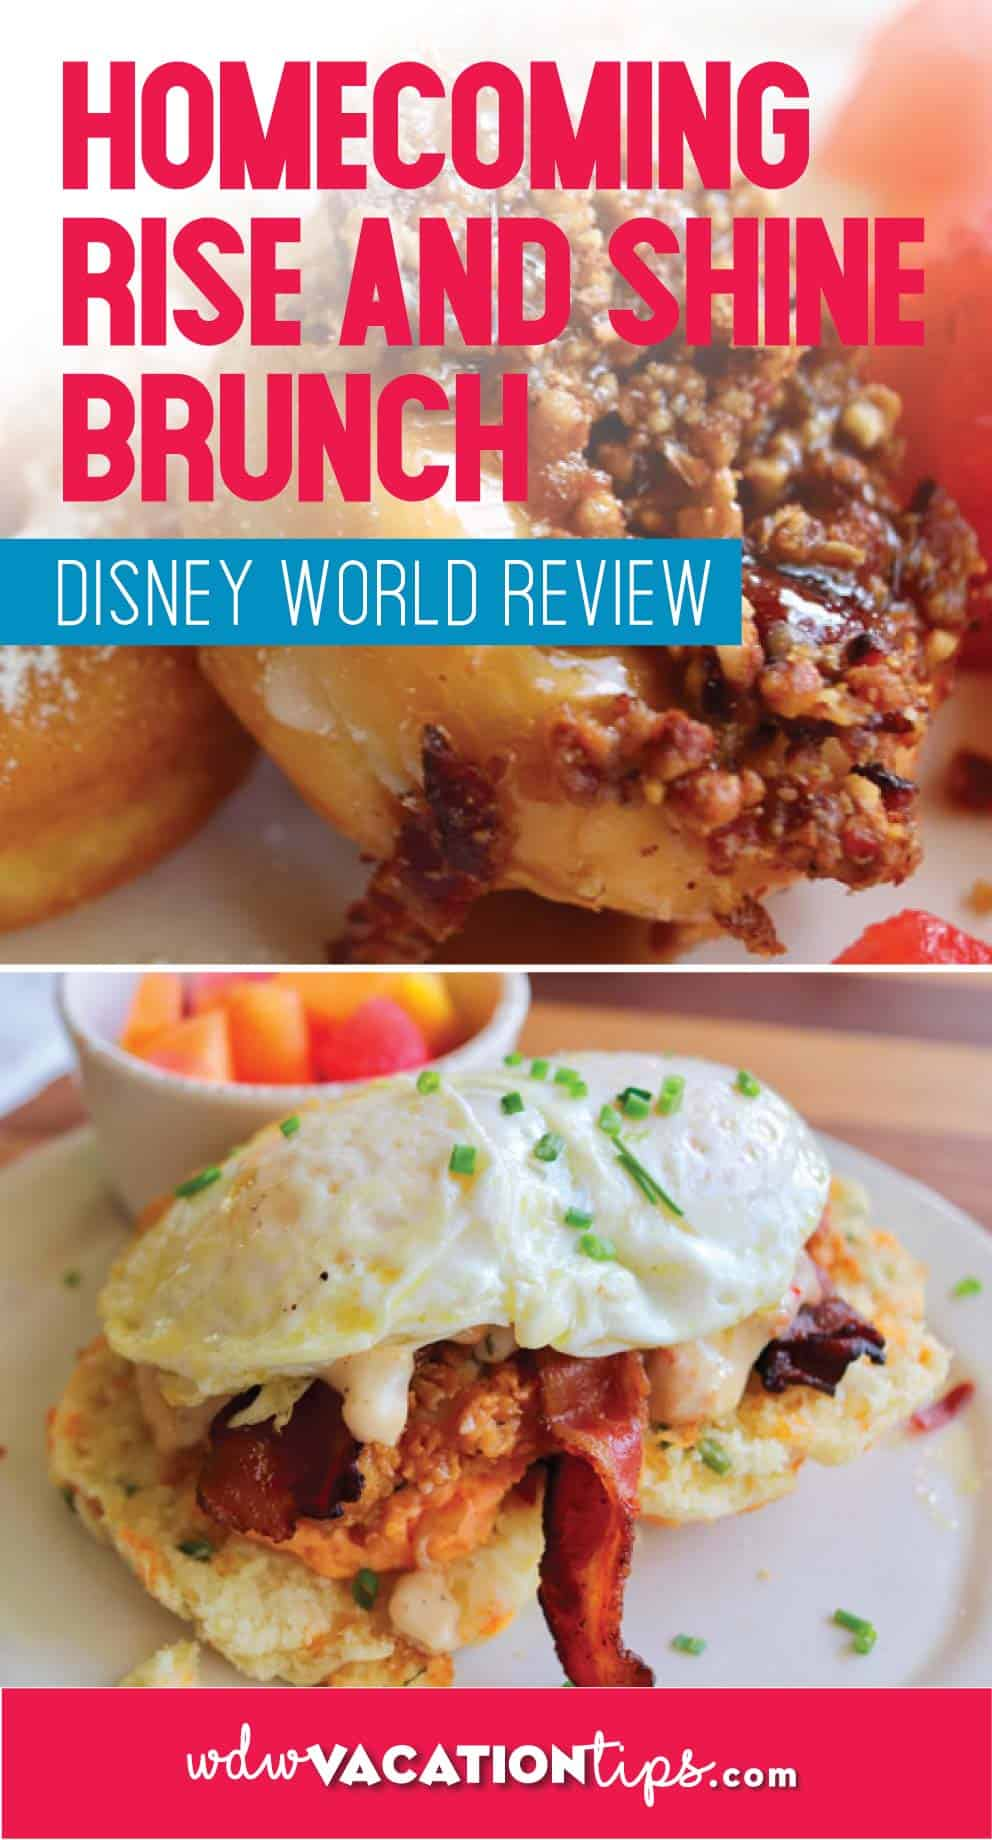 Homecoming Brunch Review